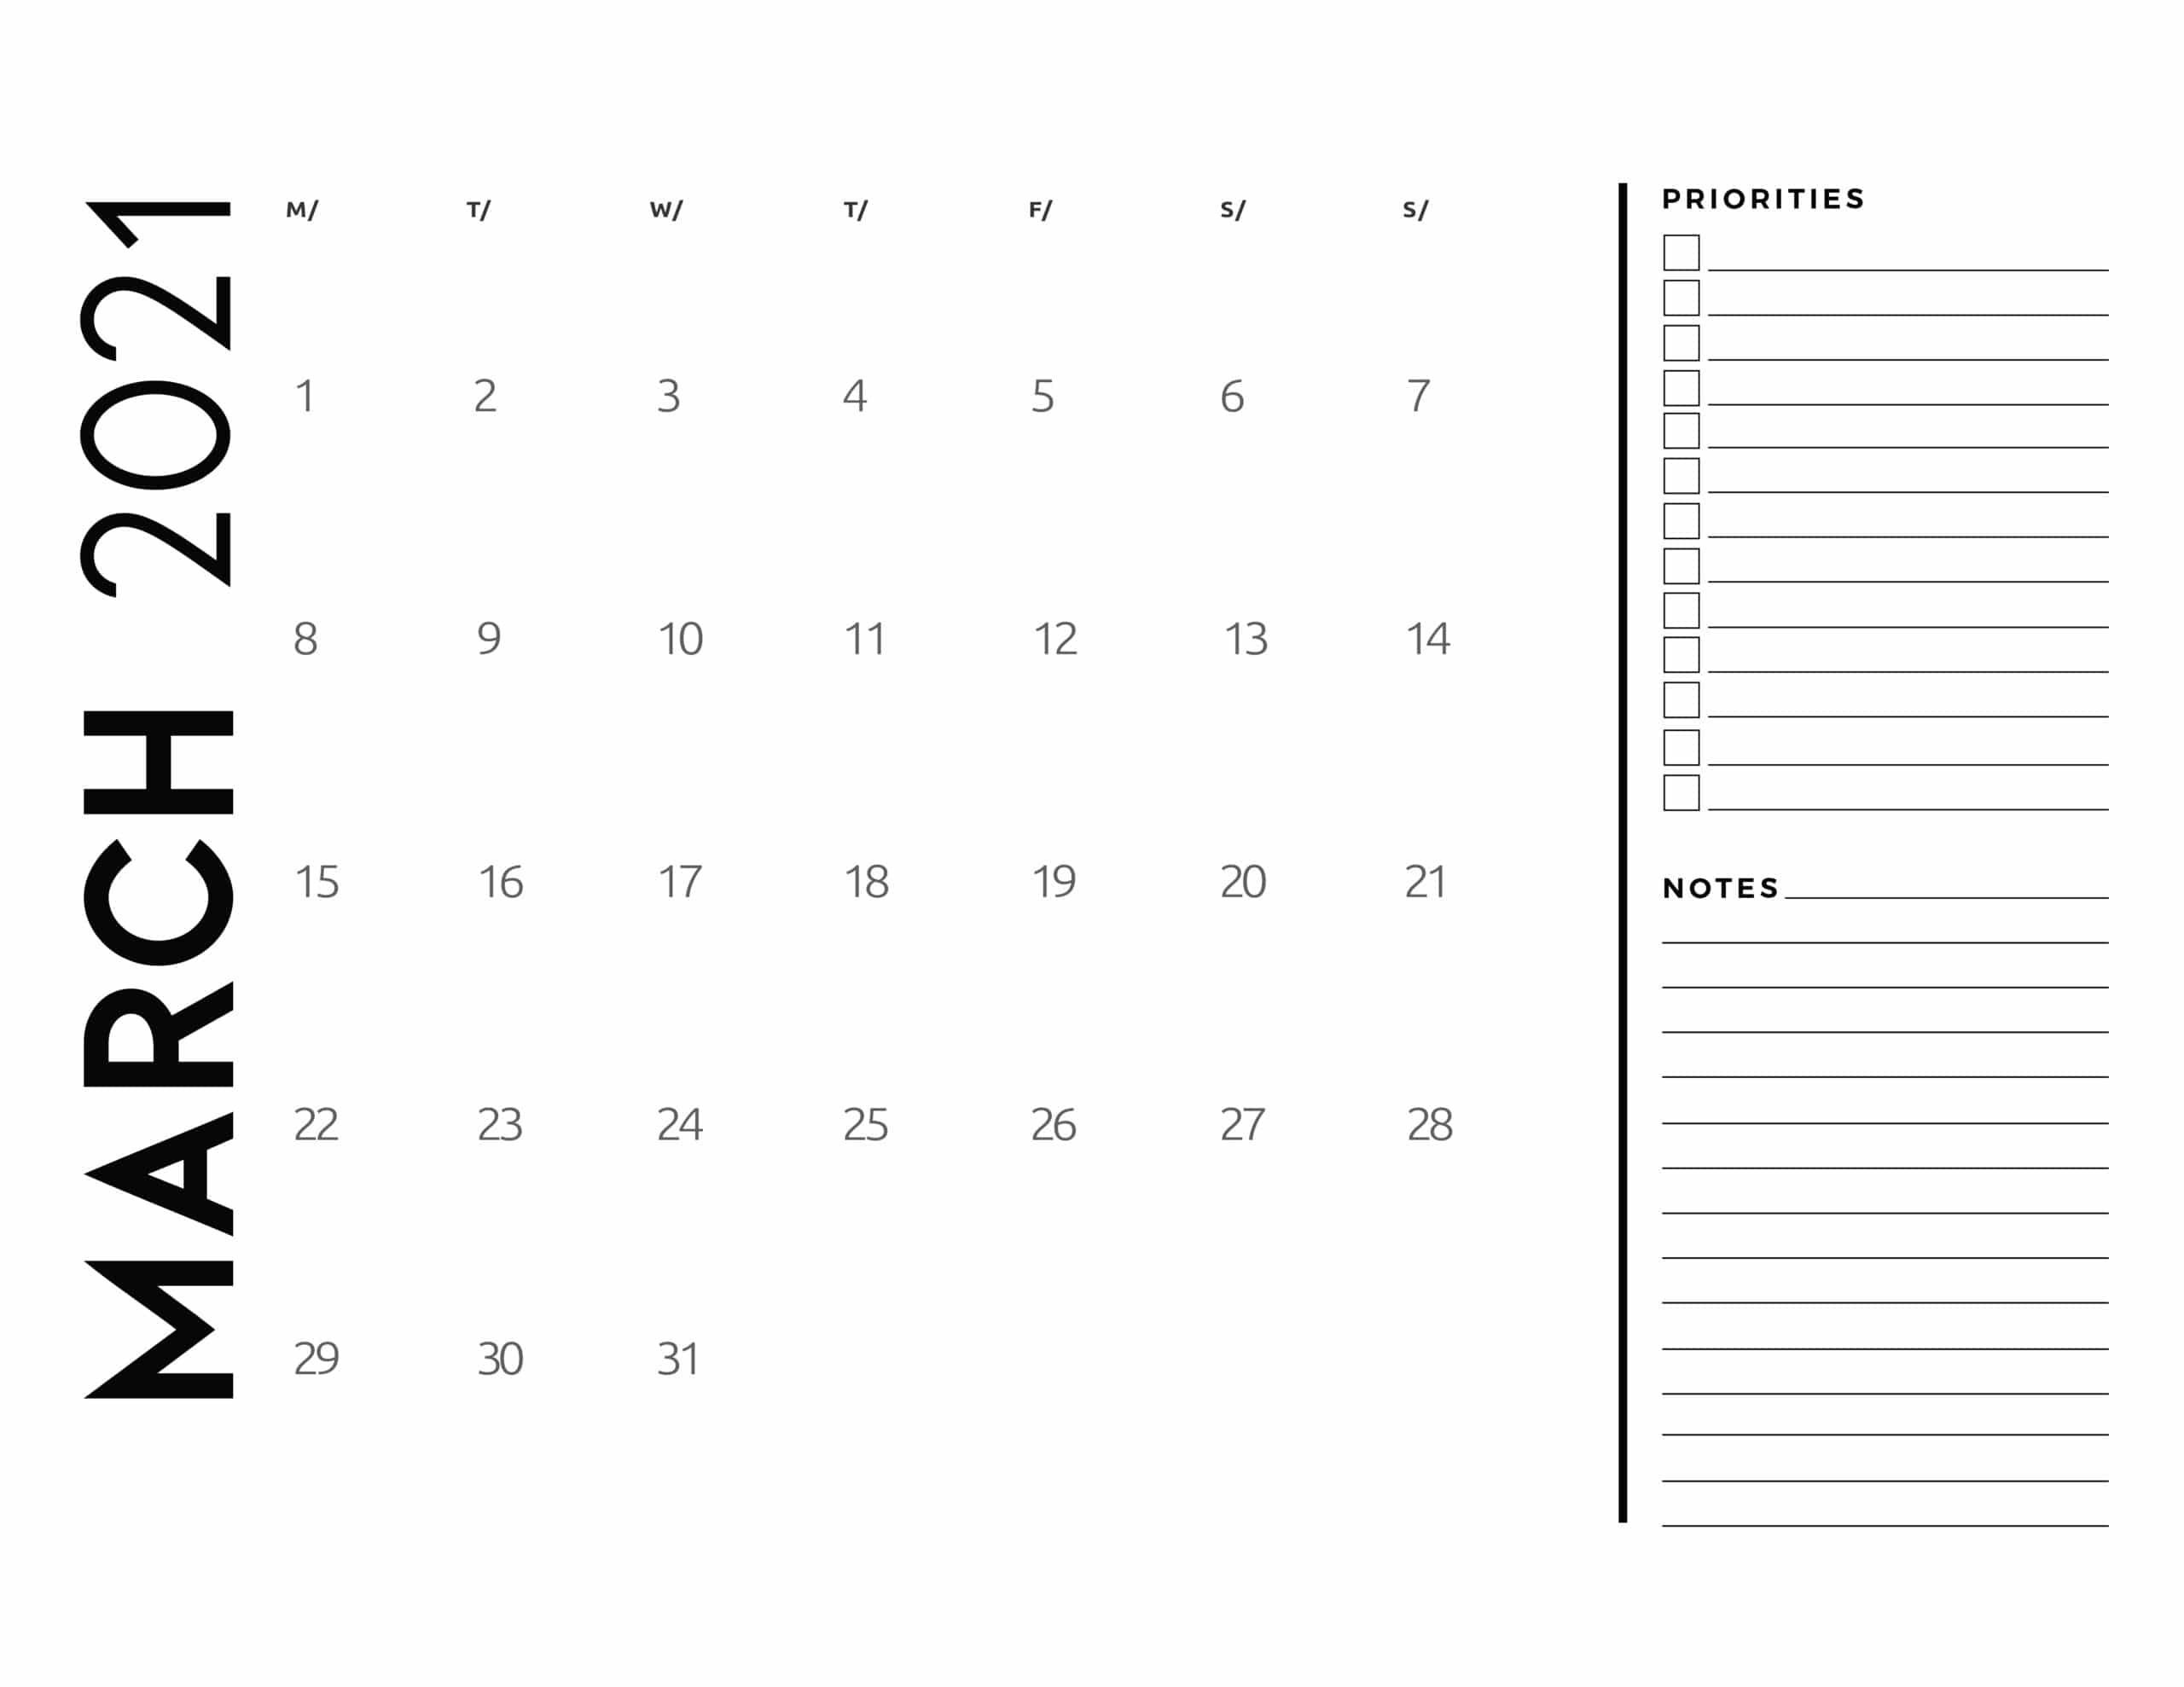 Free 2021 Calendar Priorities And Notes – World Of Printables Free Printable Calendar With Notes